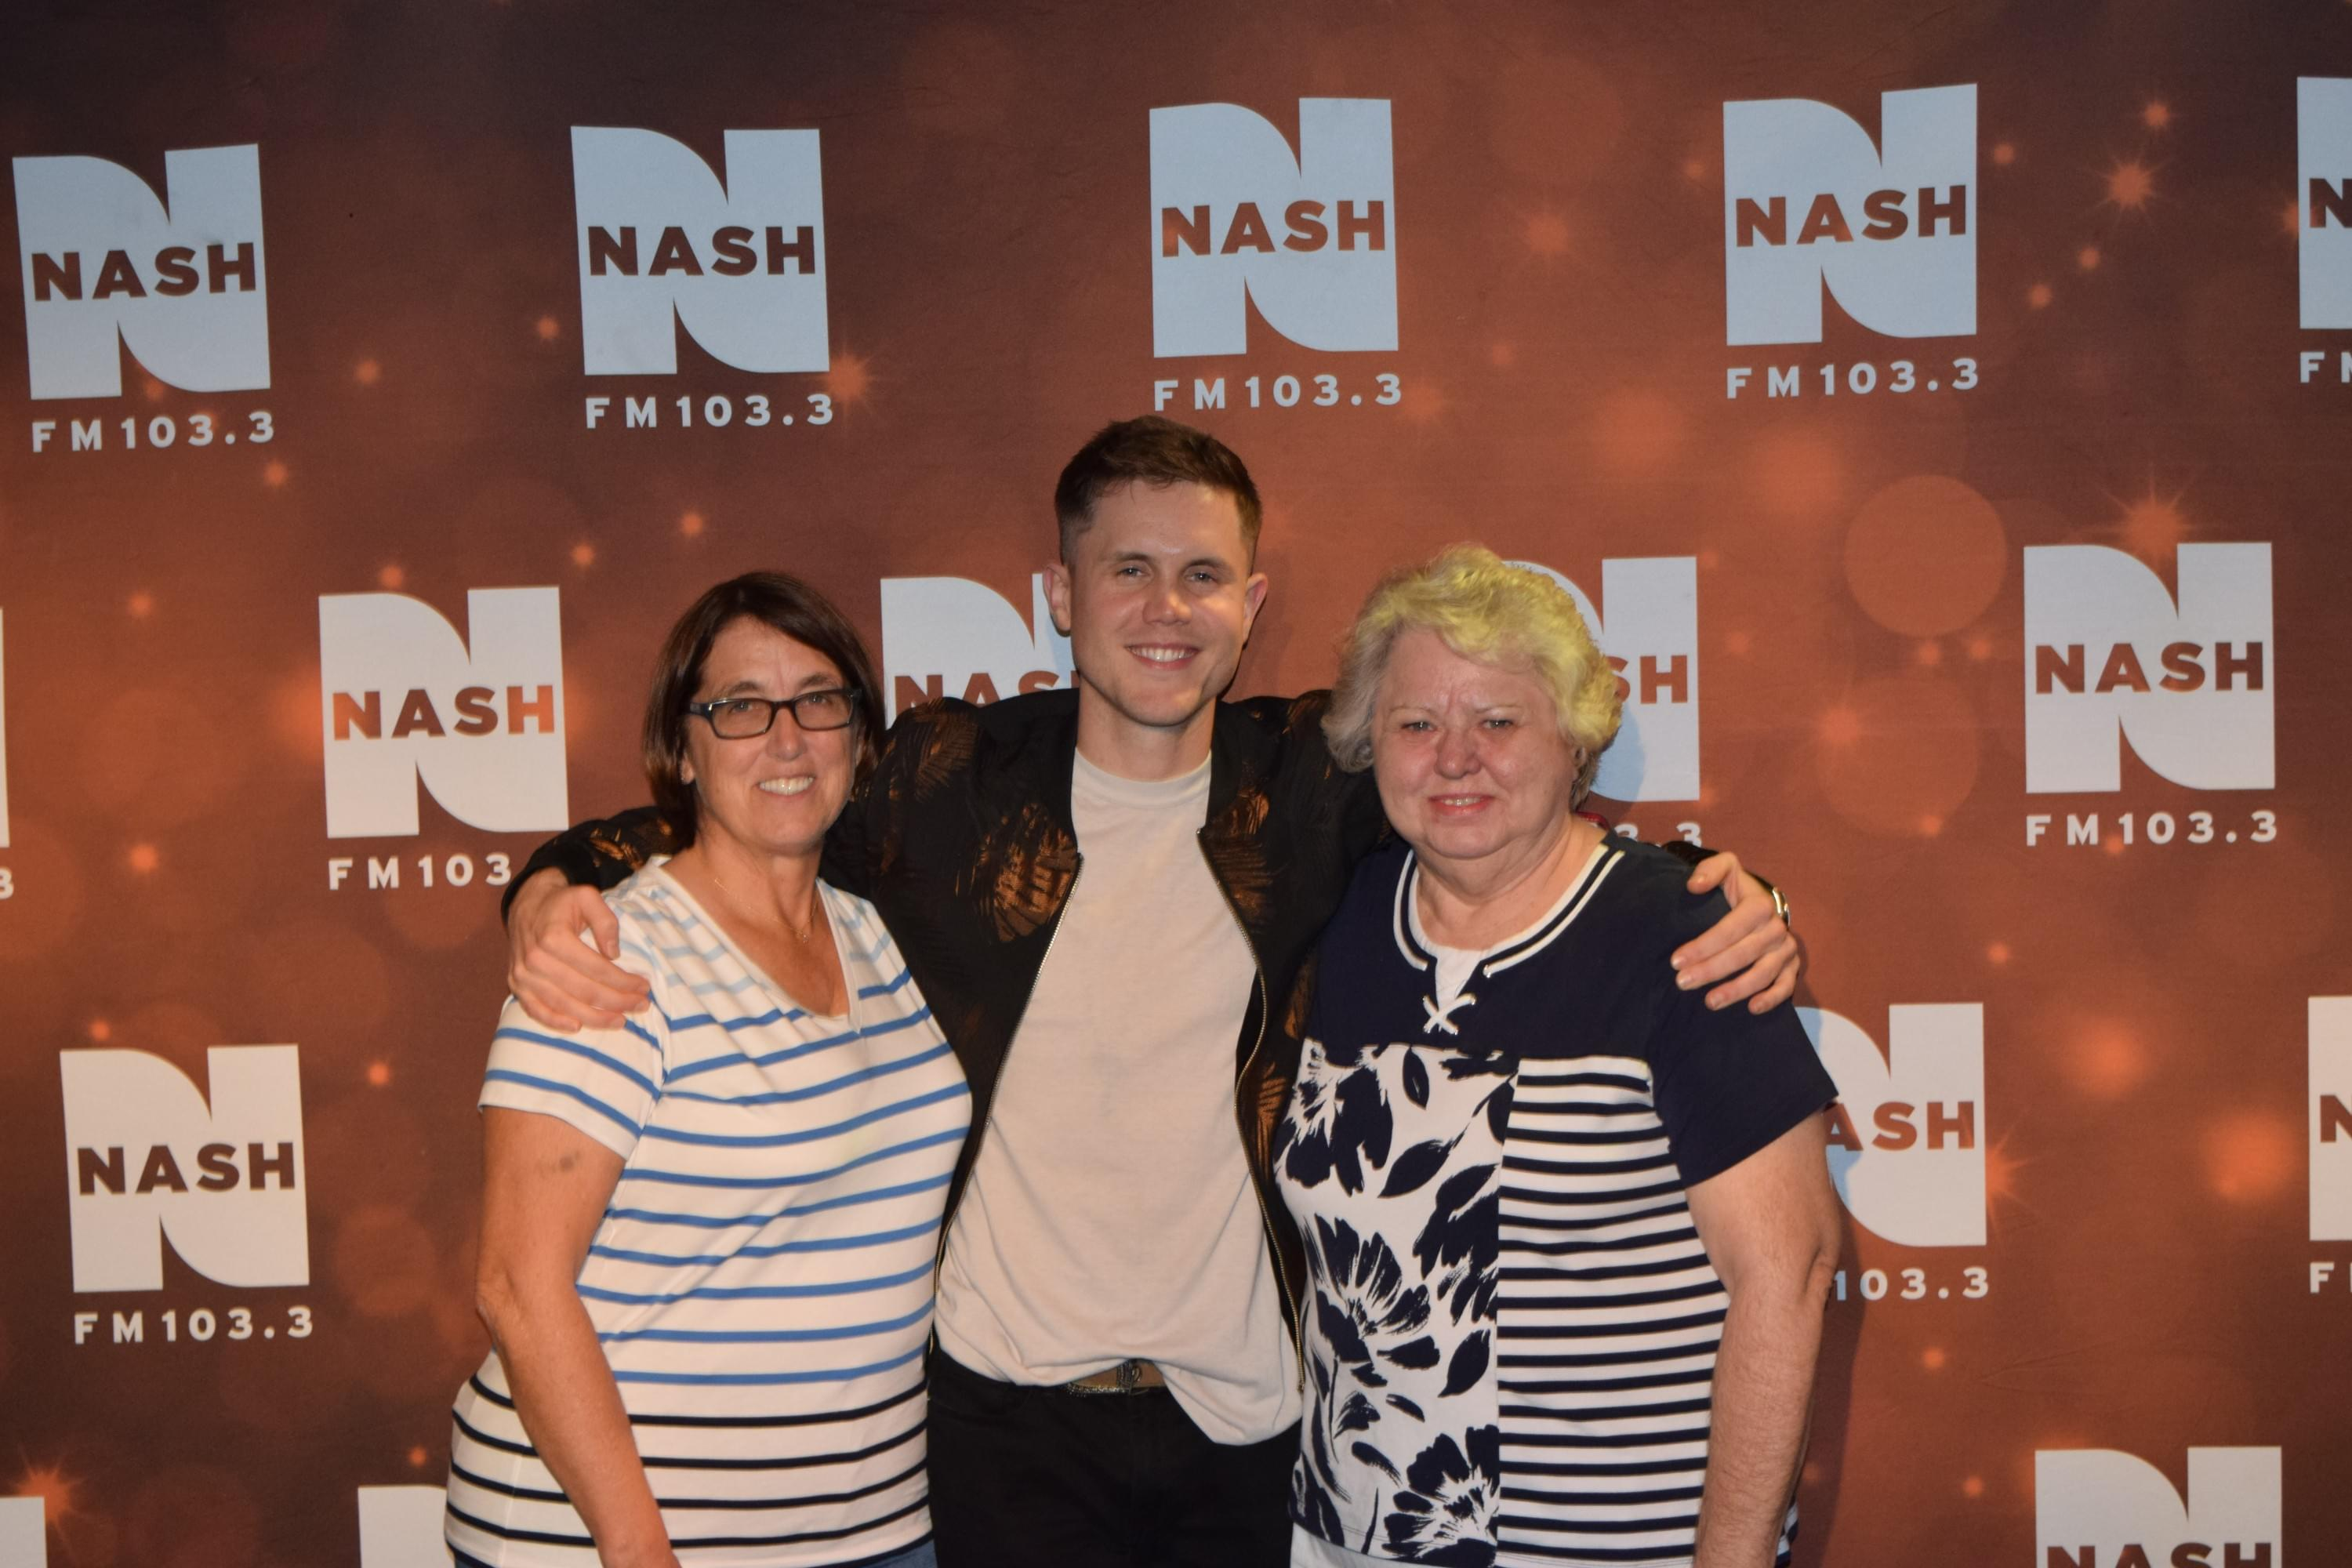 Rhythm And Boots With Trent Harmon And Cary Pearce Wkdf Fm